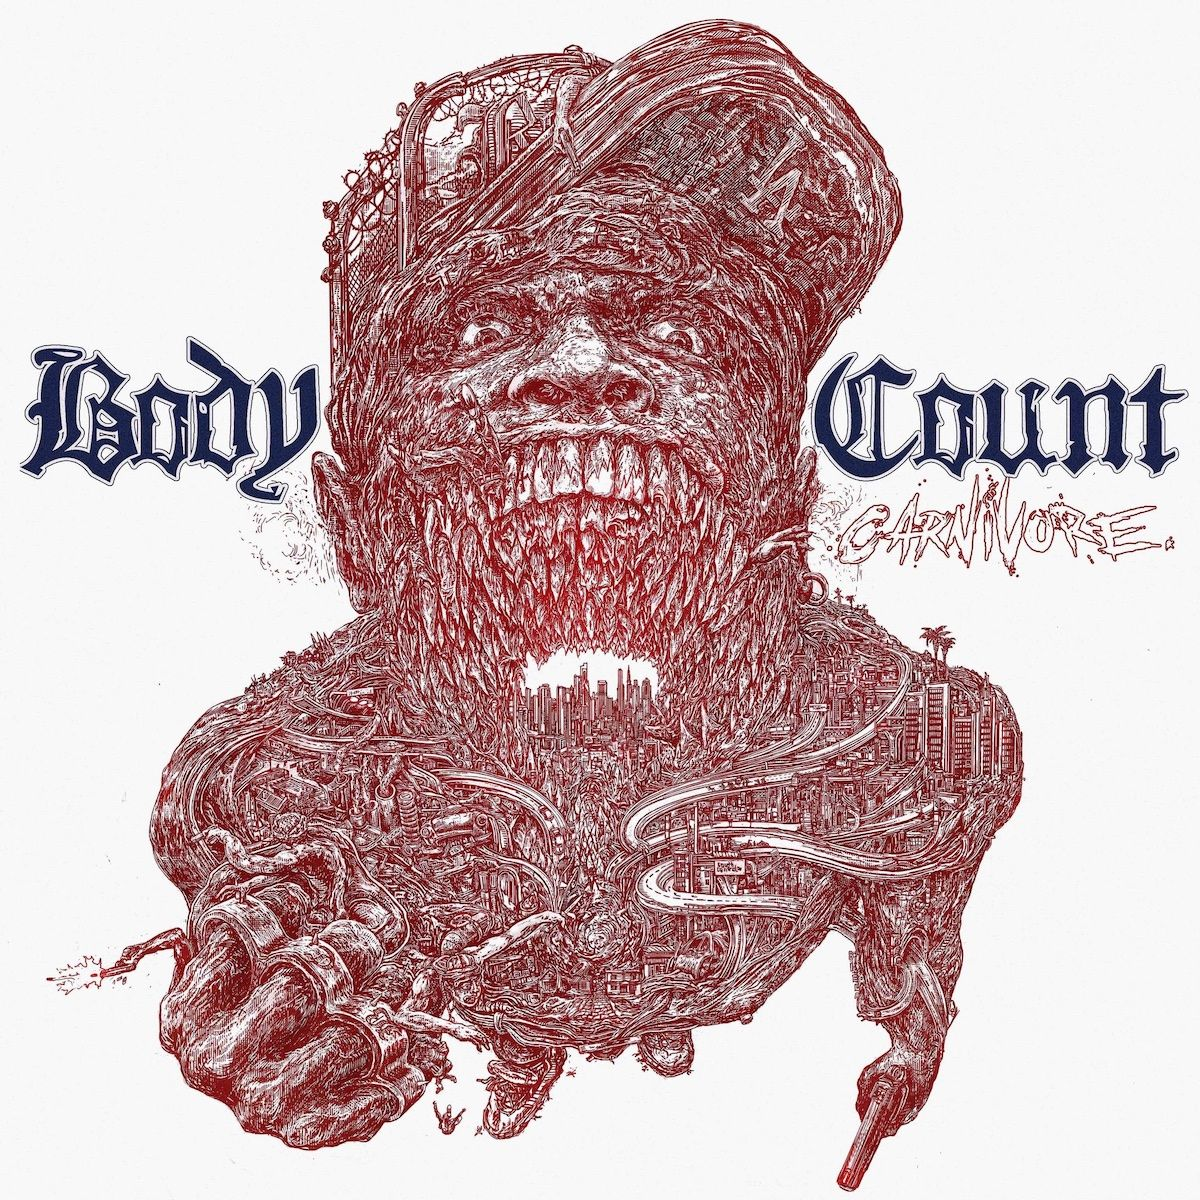 Review: Body Count – Carnivore – The Rock Life